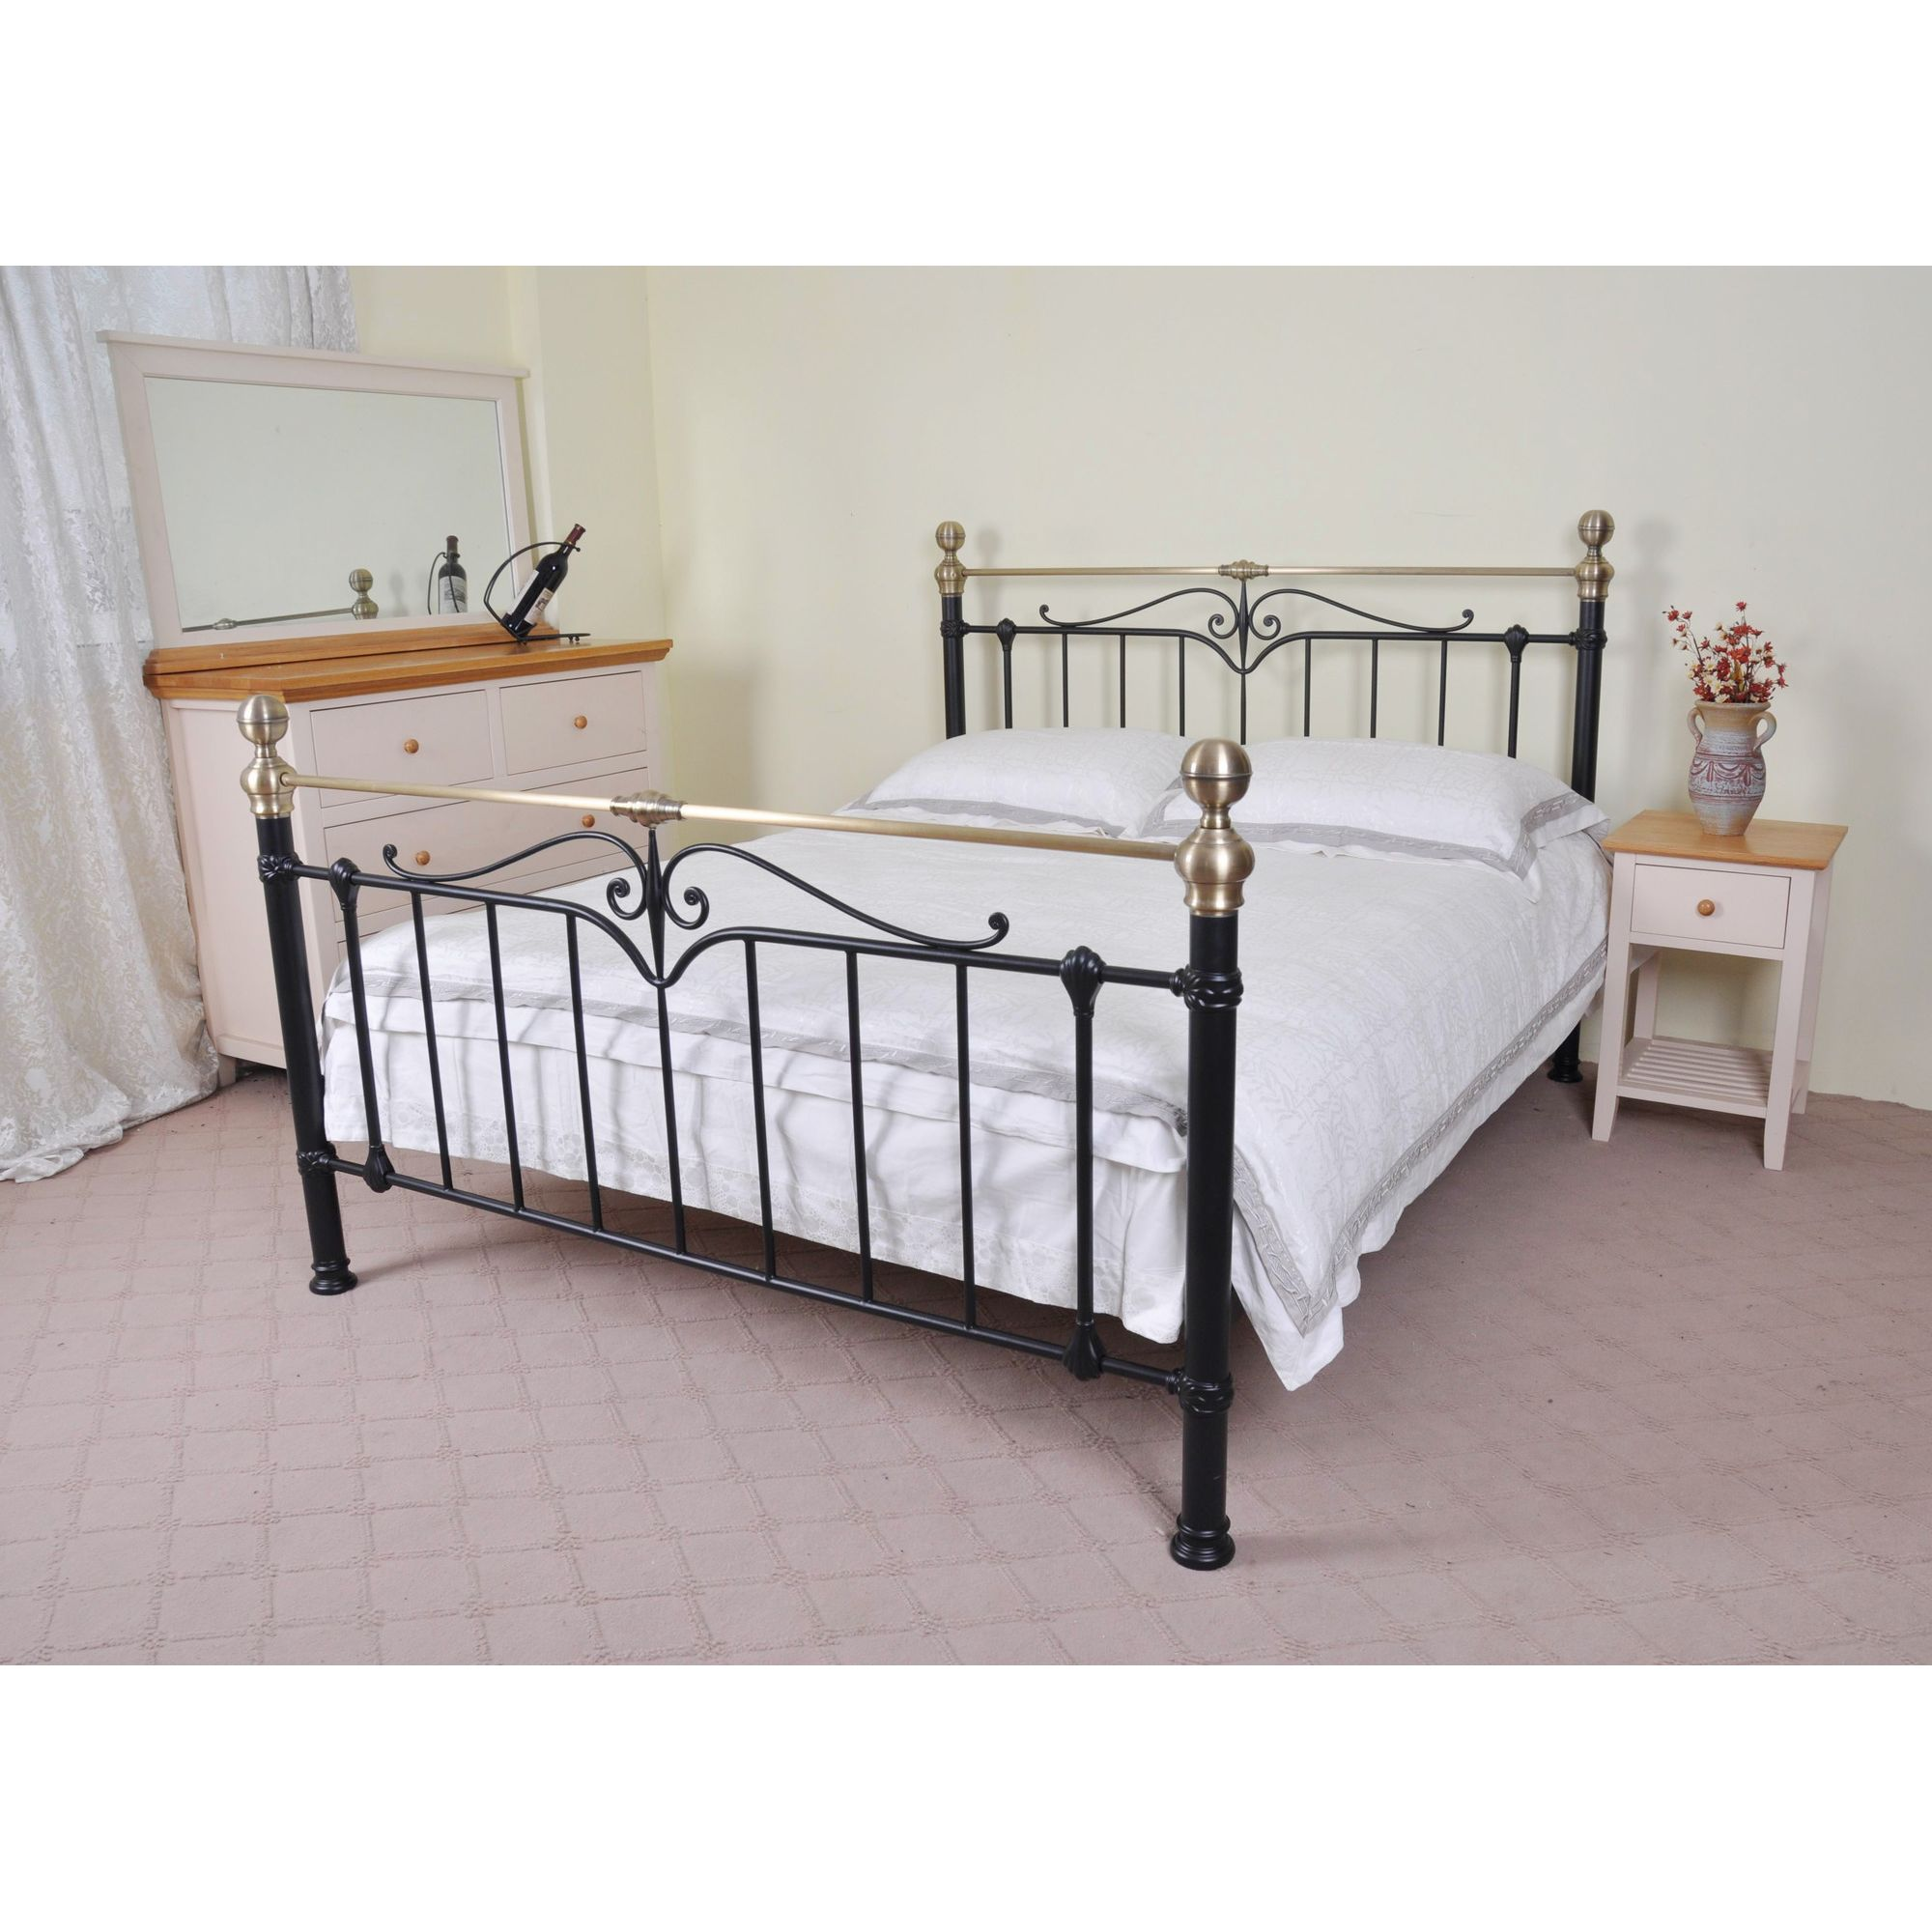 Limelight Sigma Bed Frame - King - Black at Tesco Direct